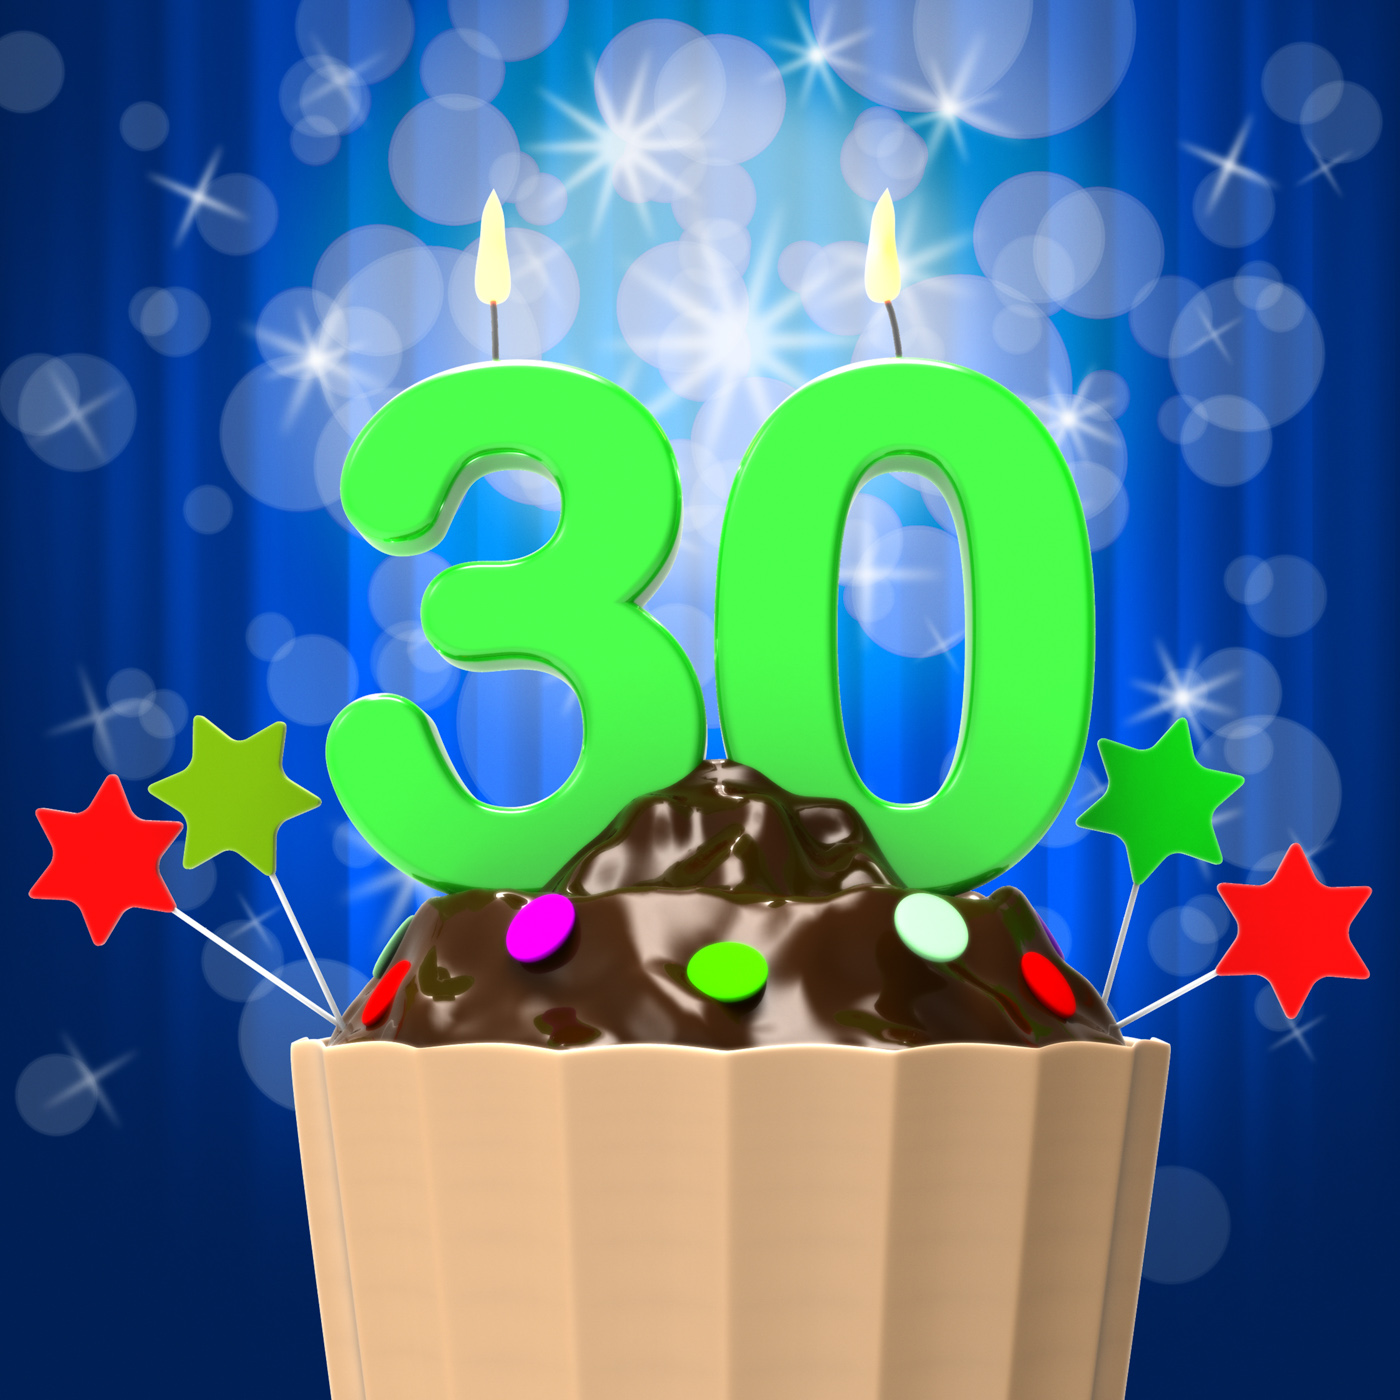 Thirty Candle On Cupcake Shows Sweet Celebration Or Event, 30, Event, Thirty, Thirtieth, HQ Photo